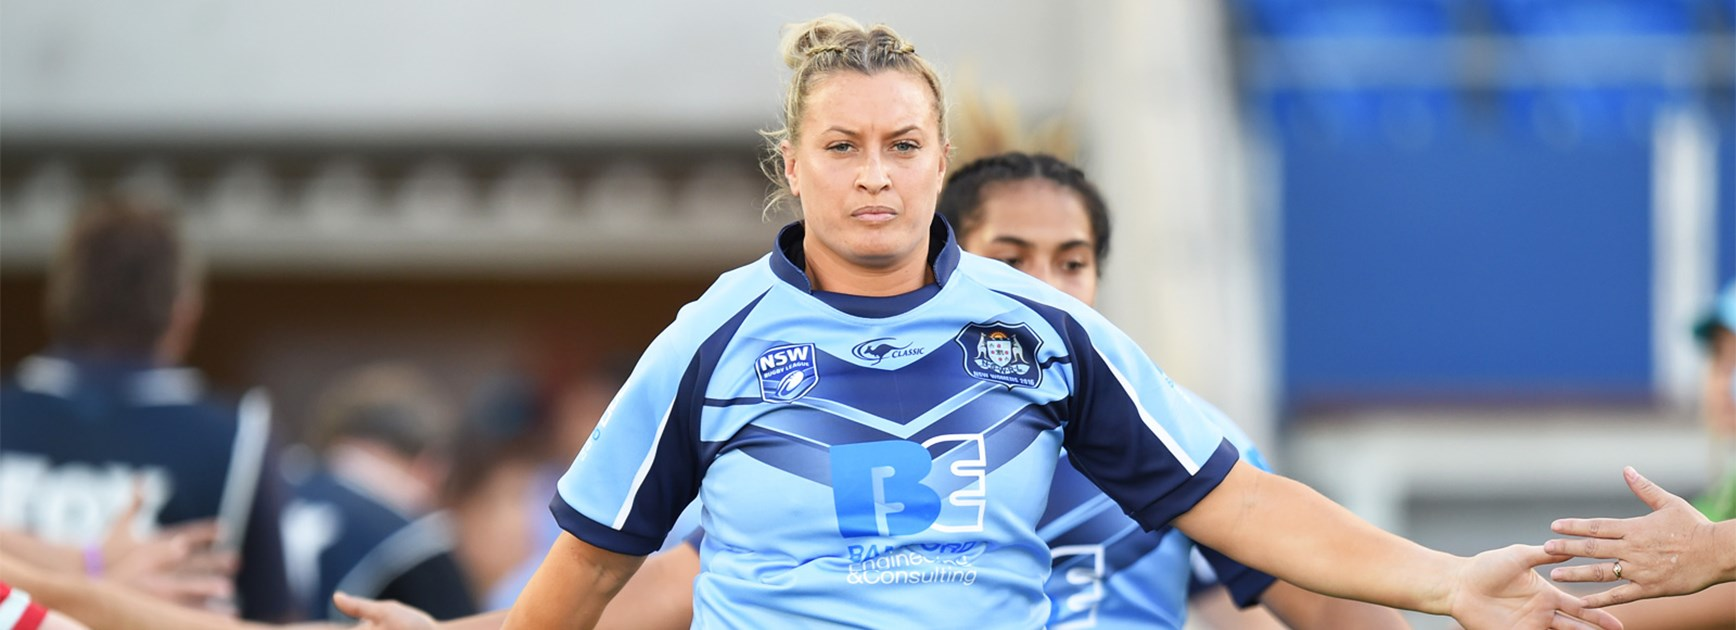 Ruan Sims leads out the women's NSW team to face Queensland last week.